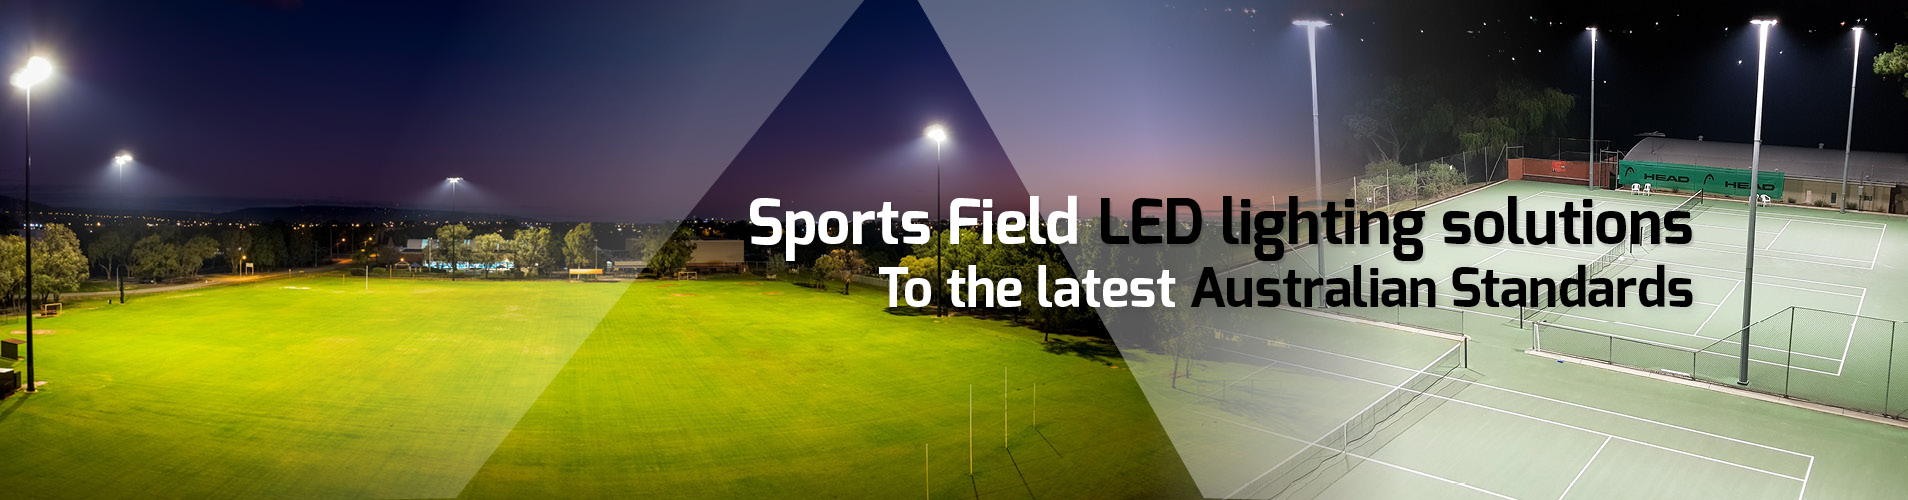 Sports-LED-lighting_Ron-Jose-Oval